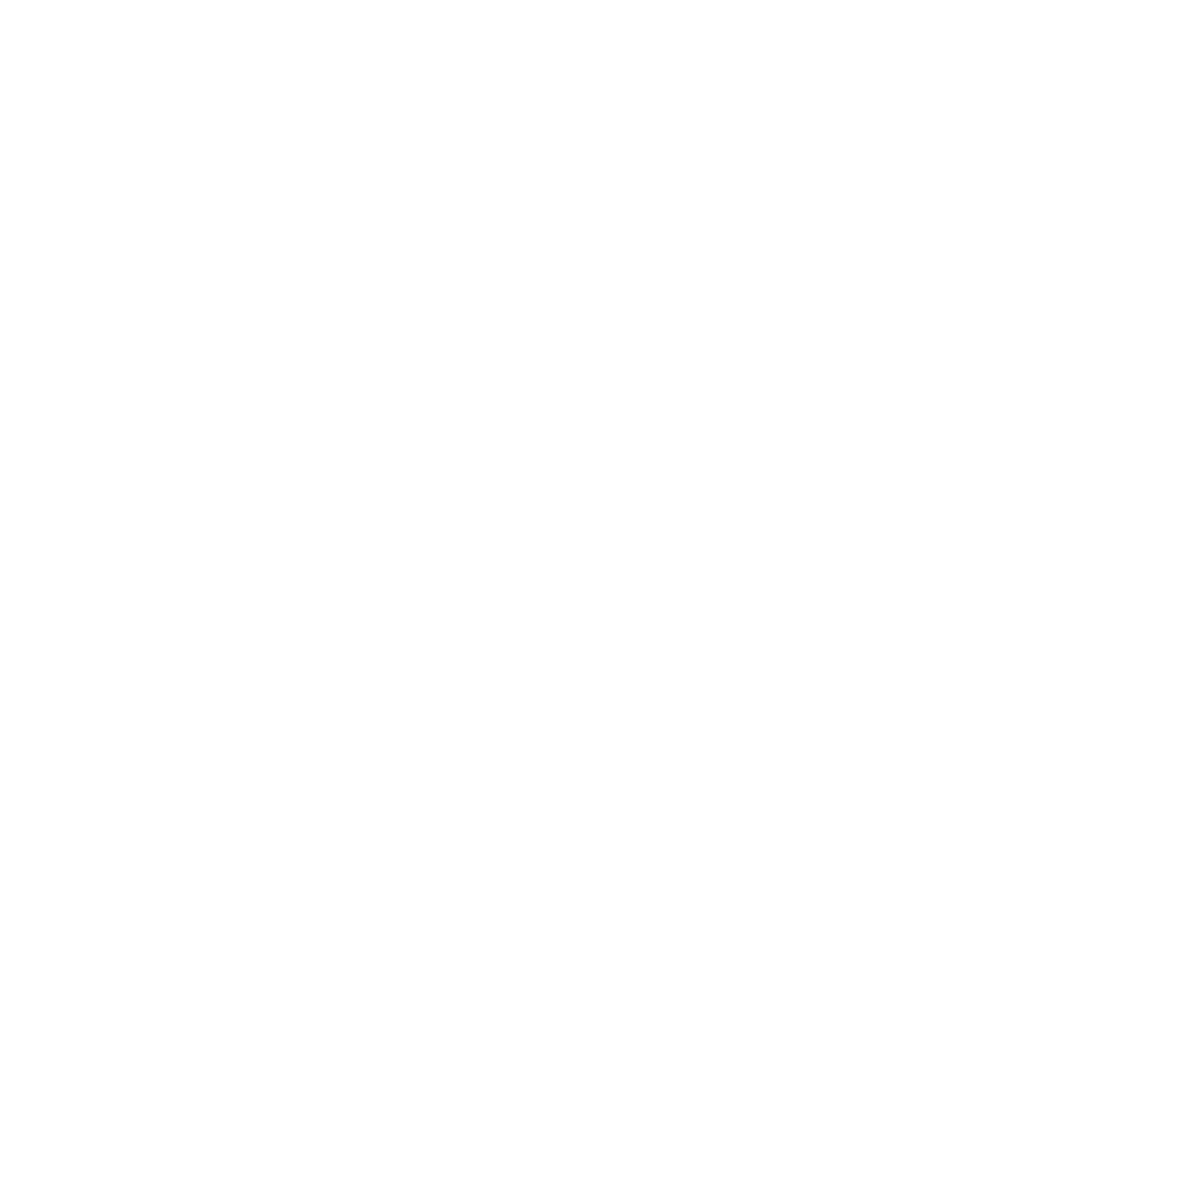 Icon depicting a drill/DIY